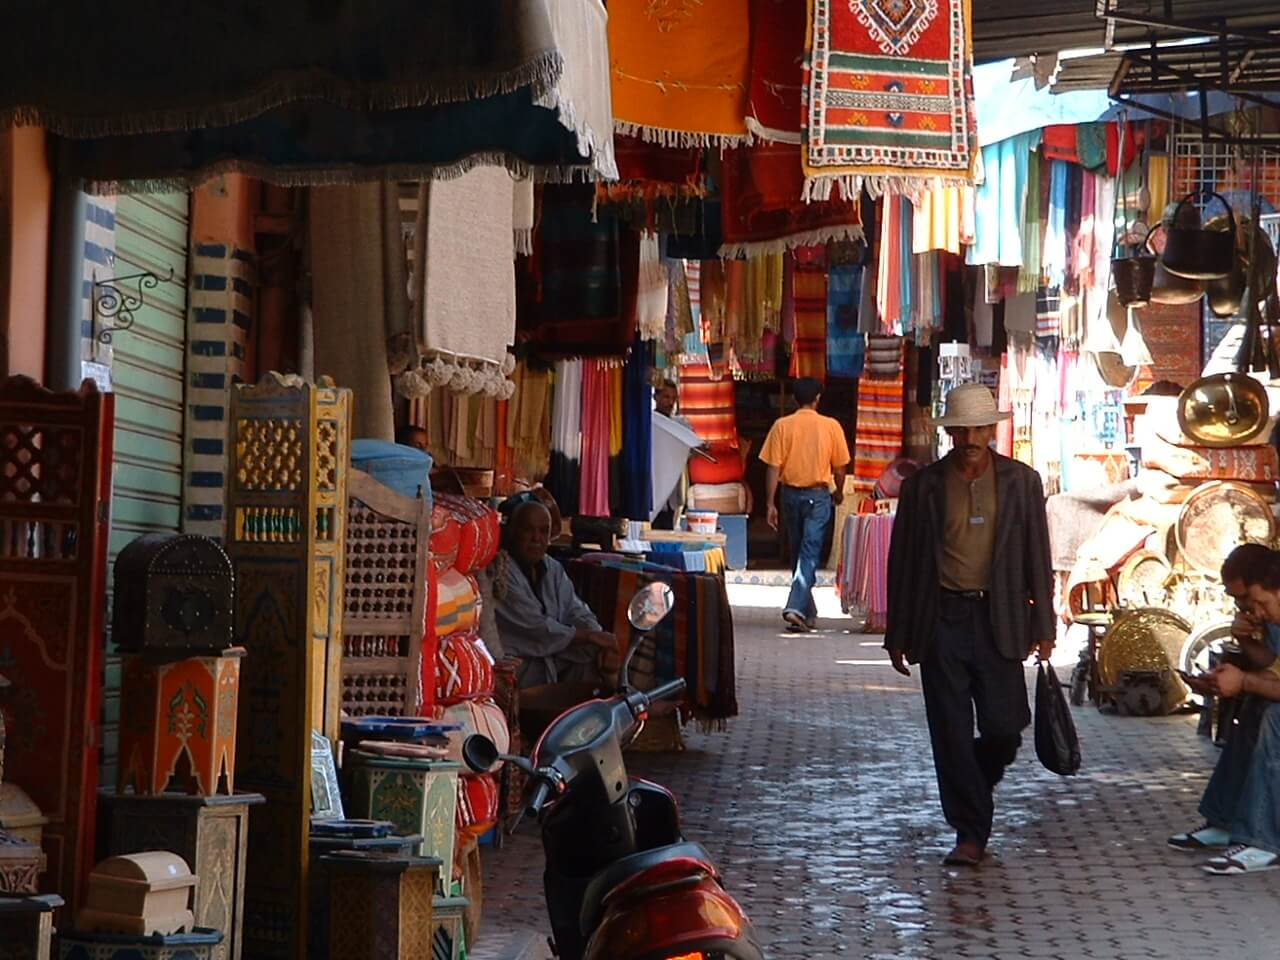 A market in Morocco